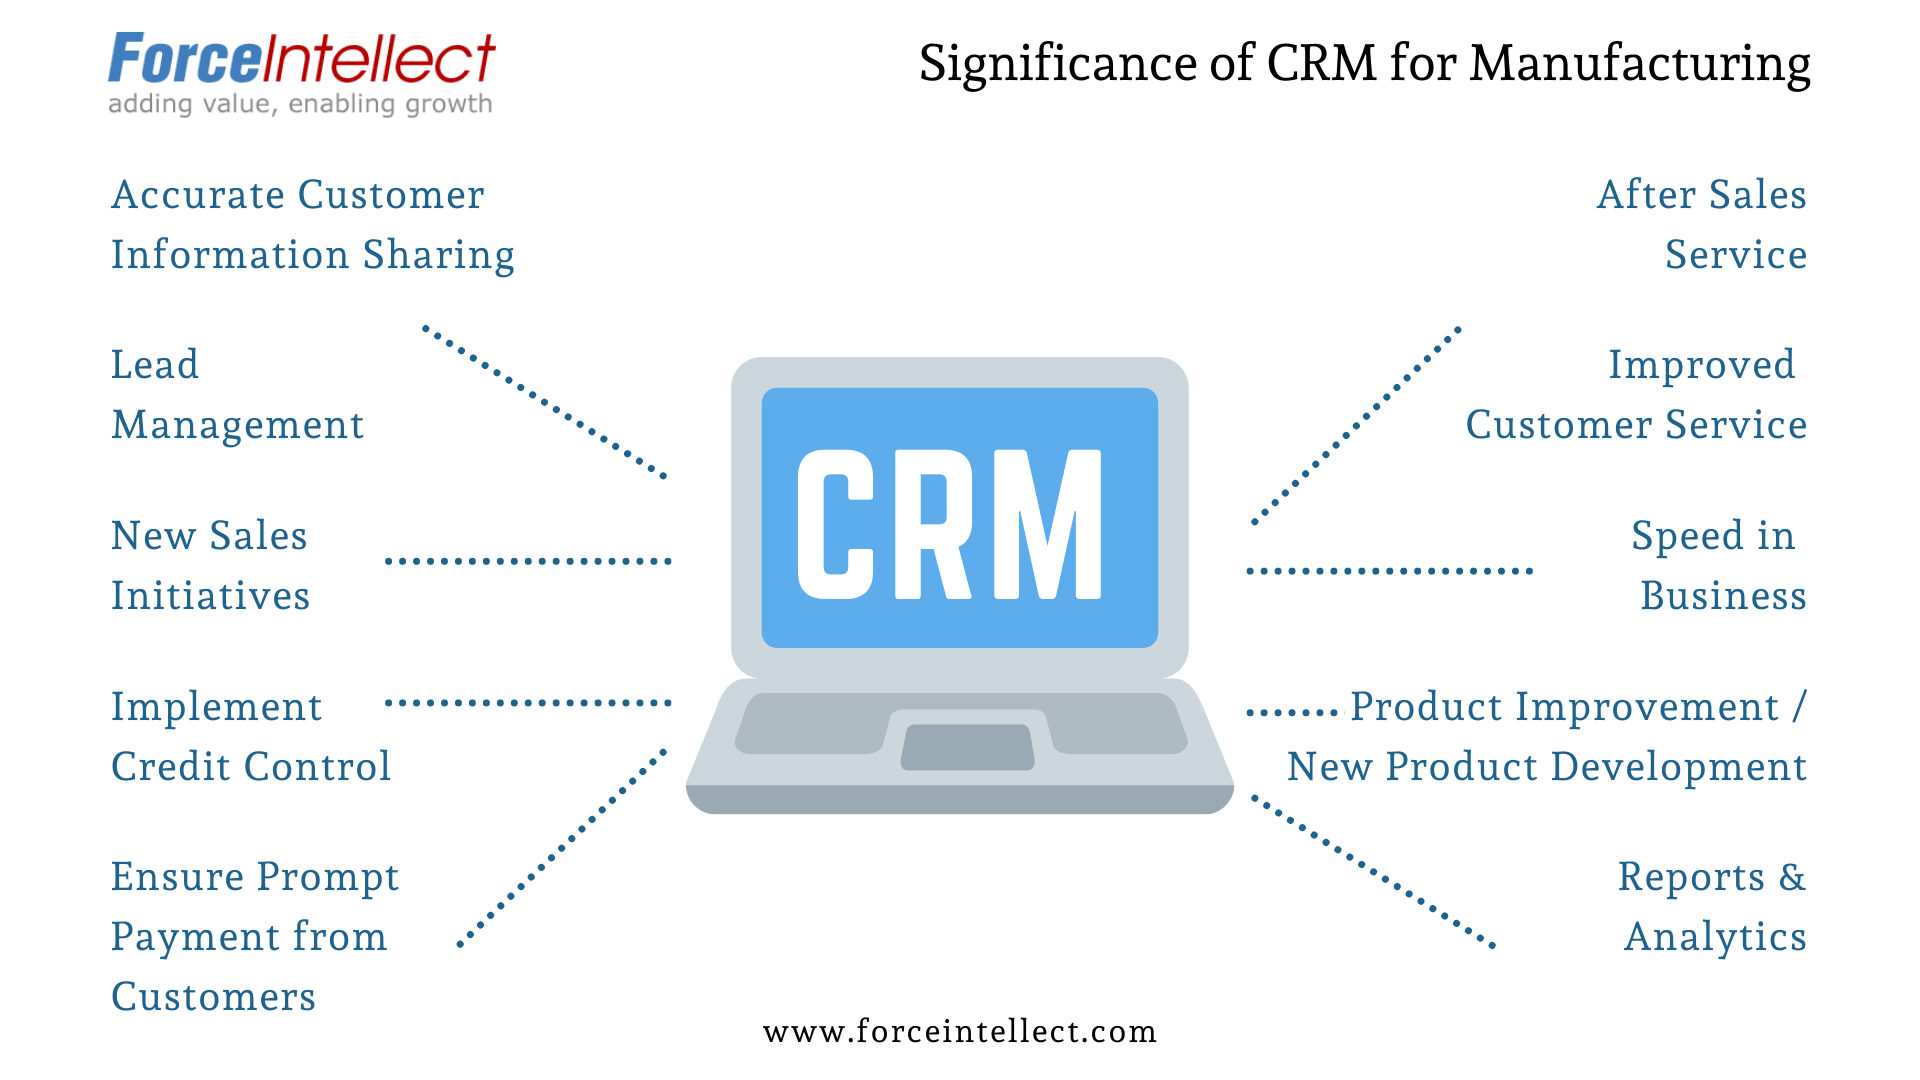 Significance of CRM for Manufacturing